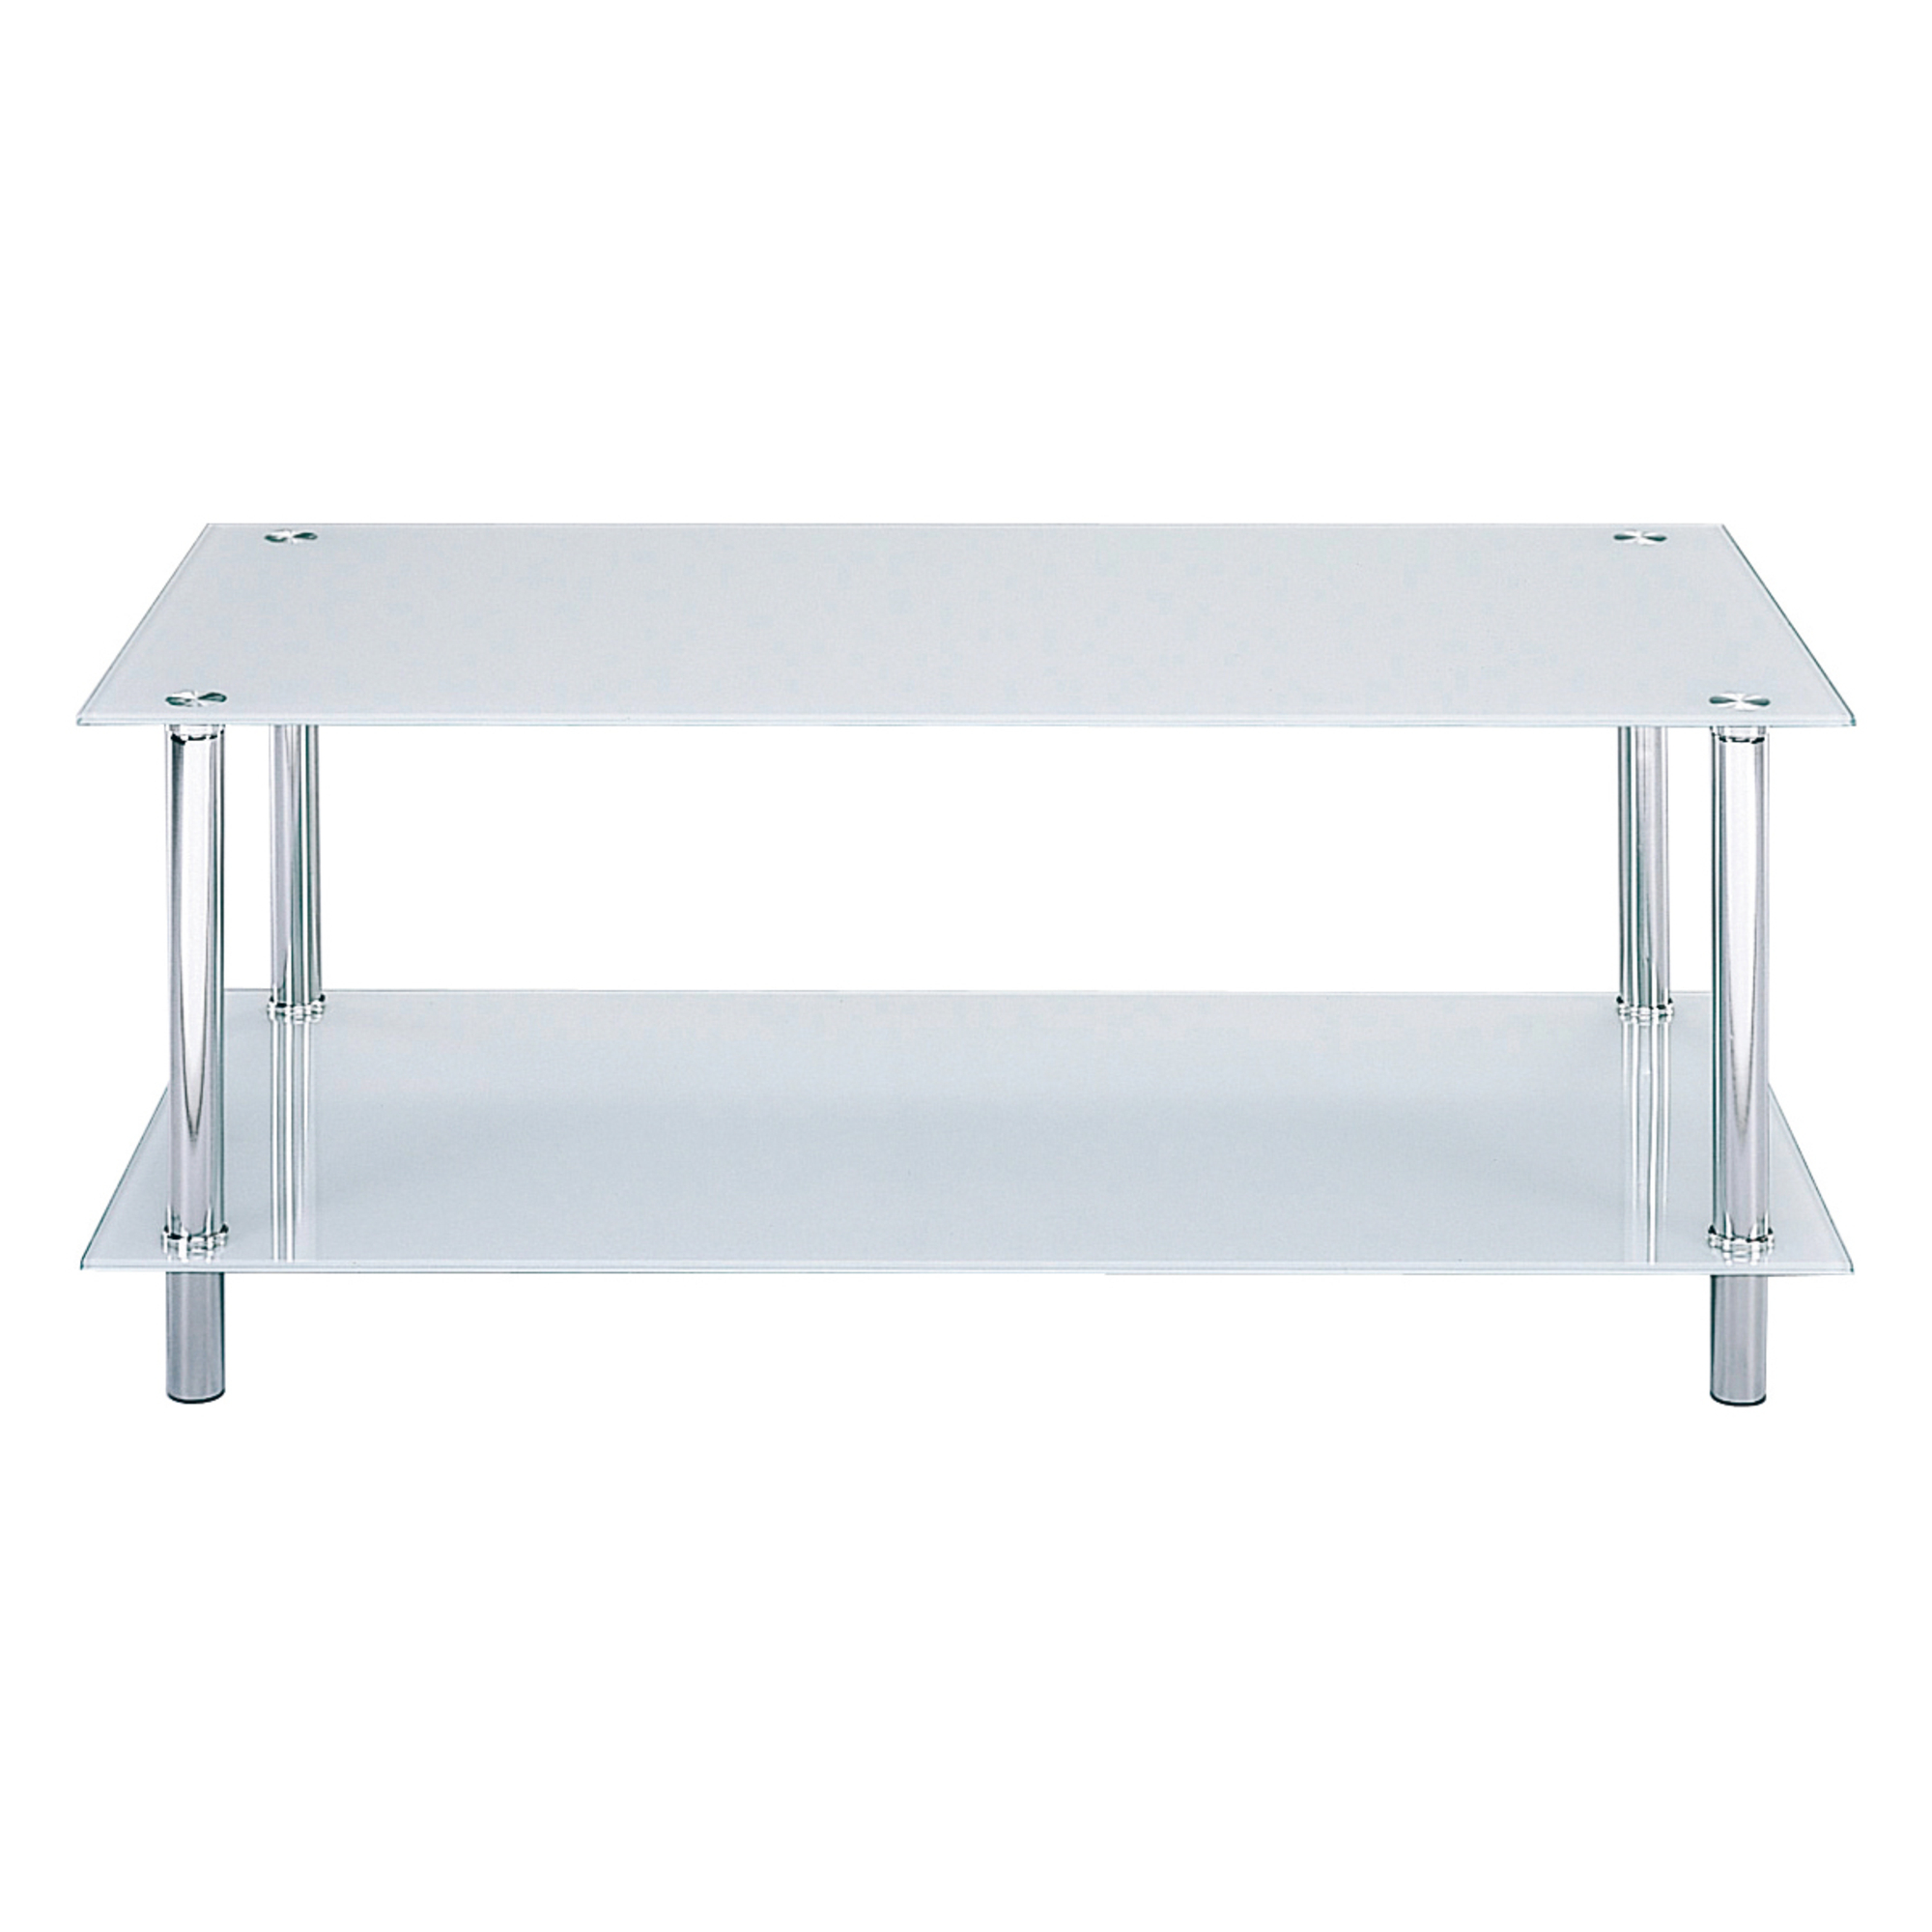 conforama- Incroyable De Table Basse Gigogne Conforama